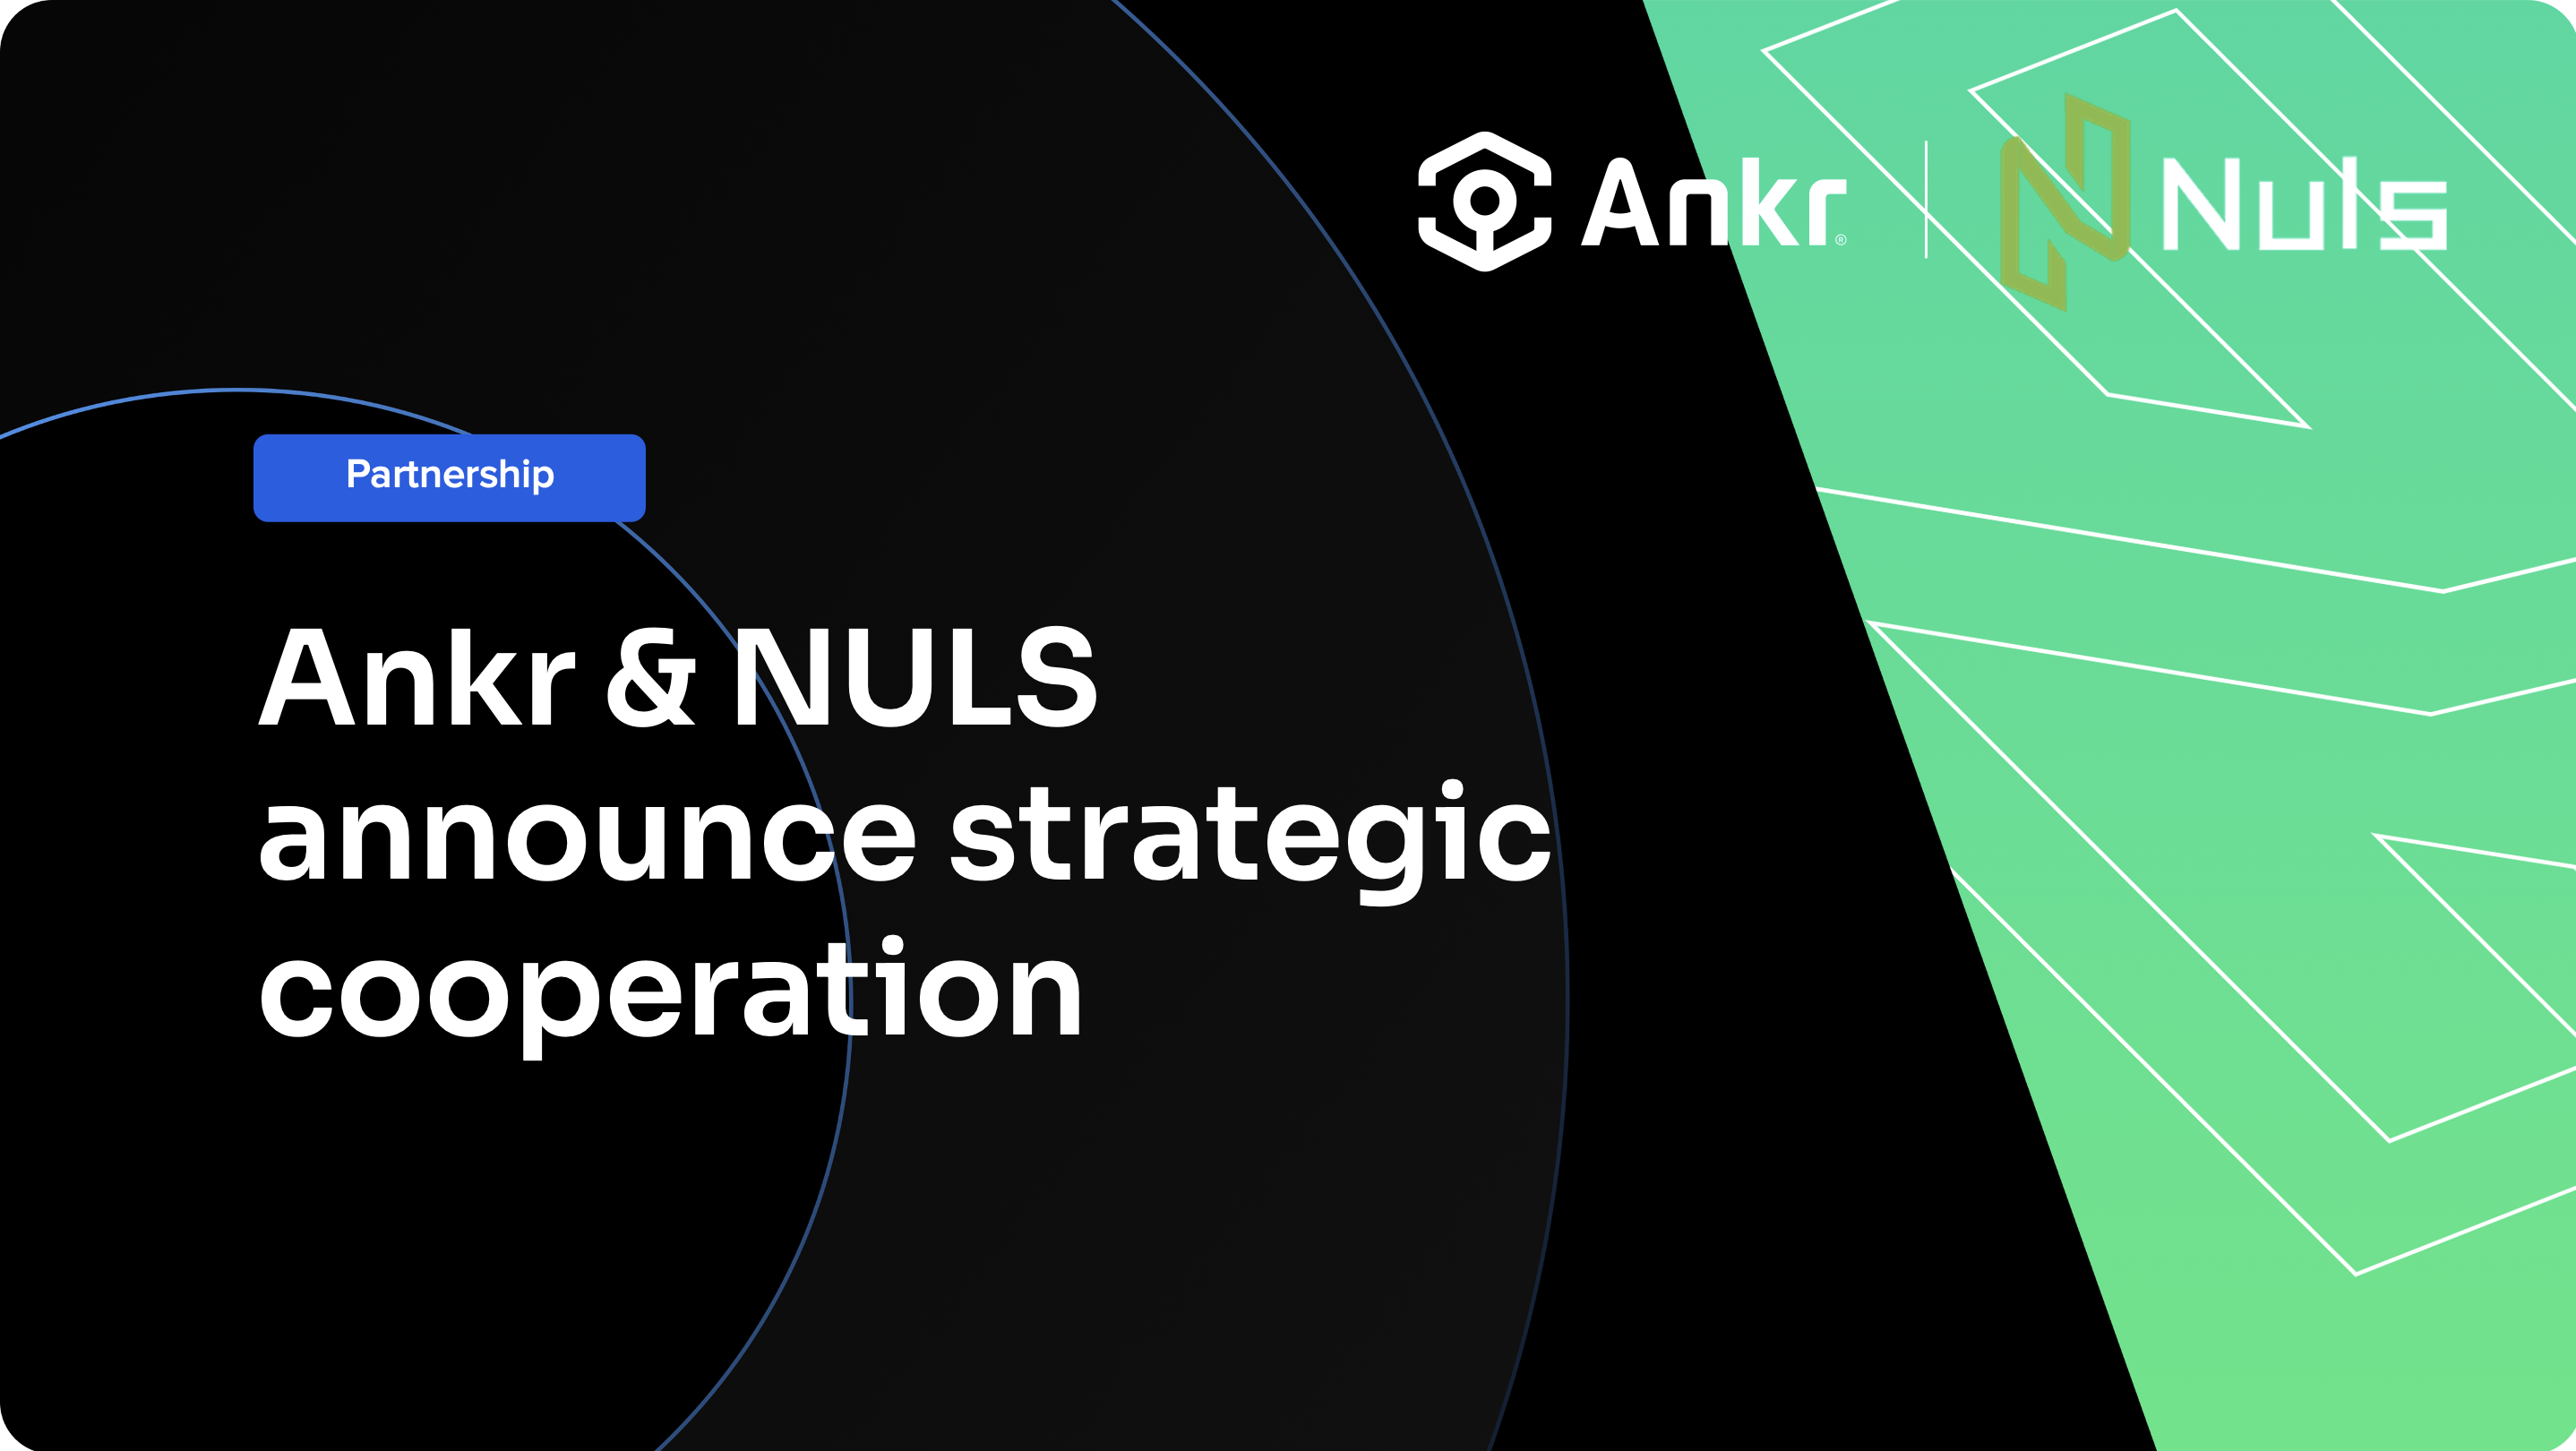 Ankr & NULS announce strategic cooperation